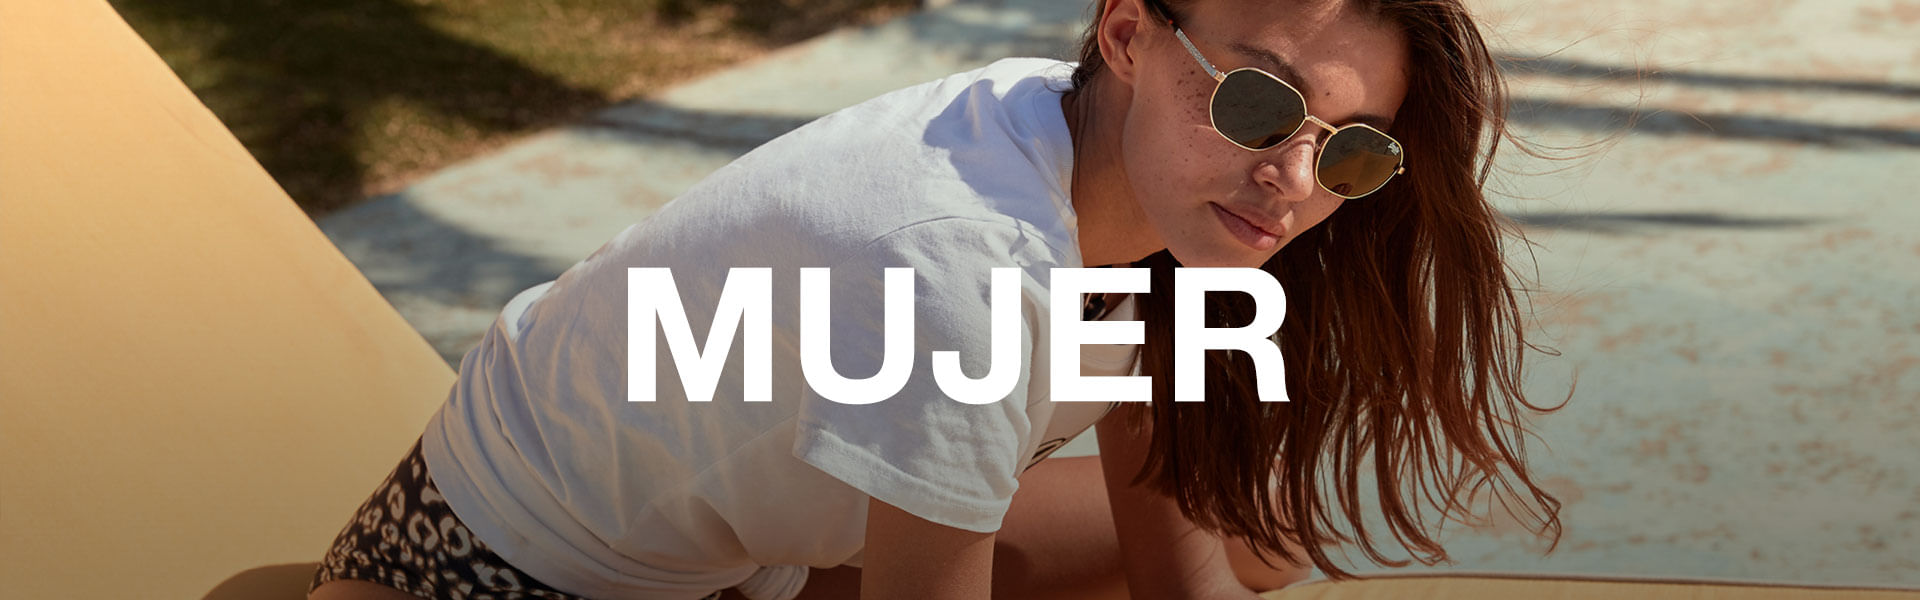 Superdry Mujer